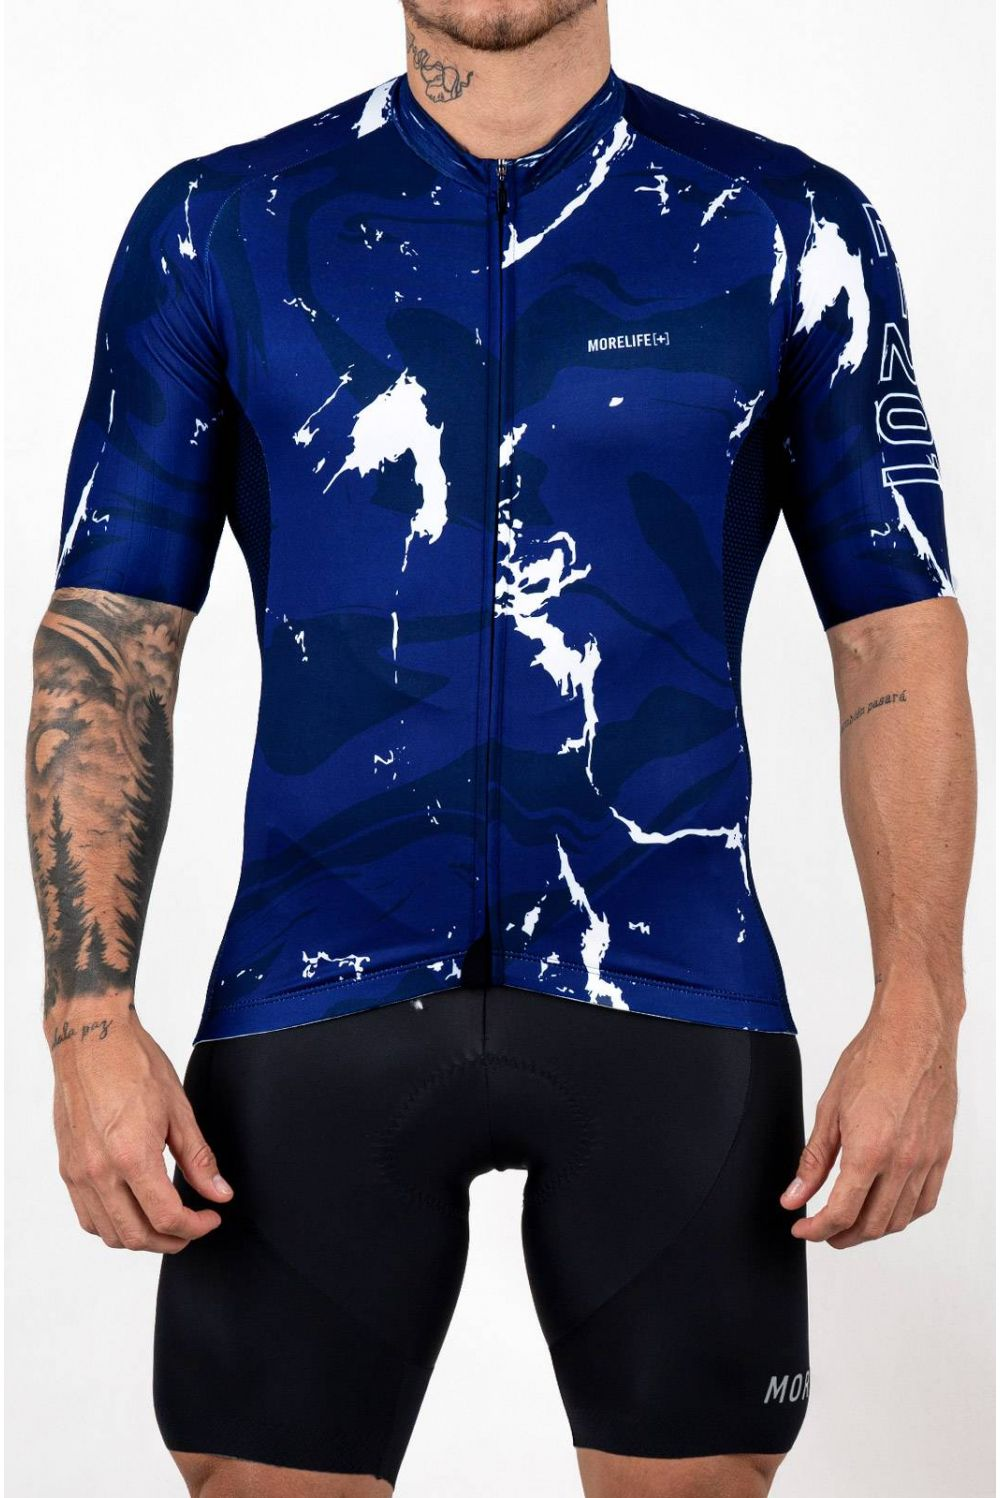 ACTIVE BLUE MARBLE JERSEY BC2227H